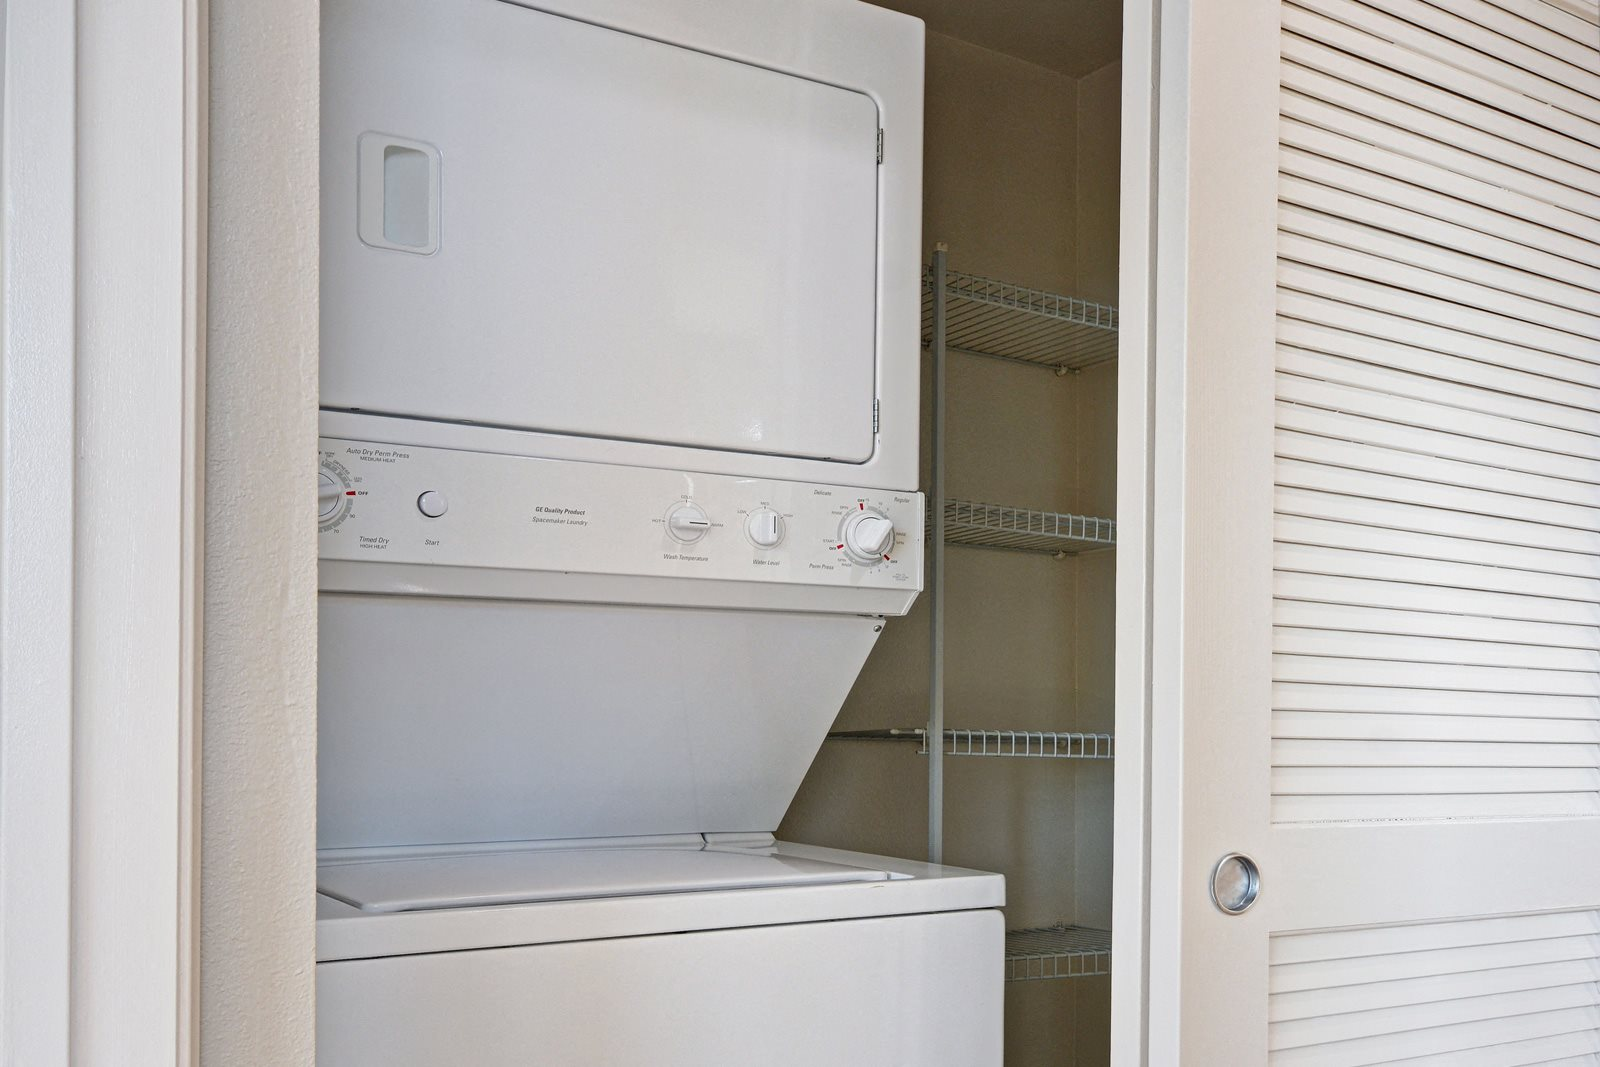 In-Home Washer and Dryer at Villa Montanaro,203 Coggins Drive Pleasant Hill, 94523